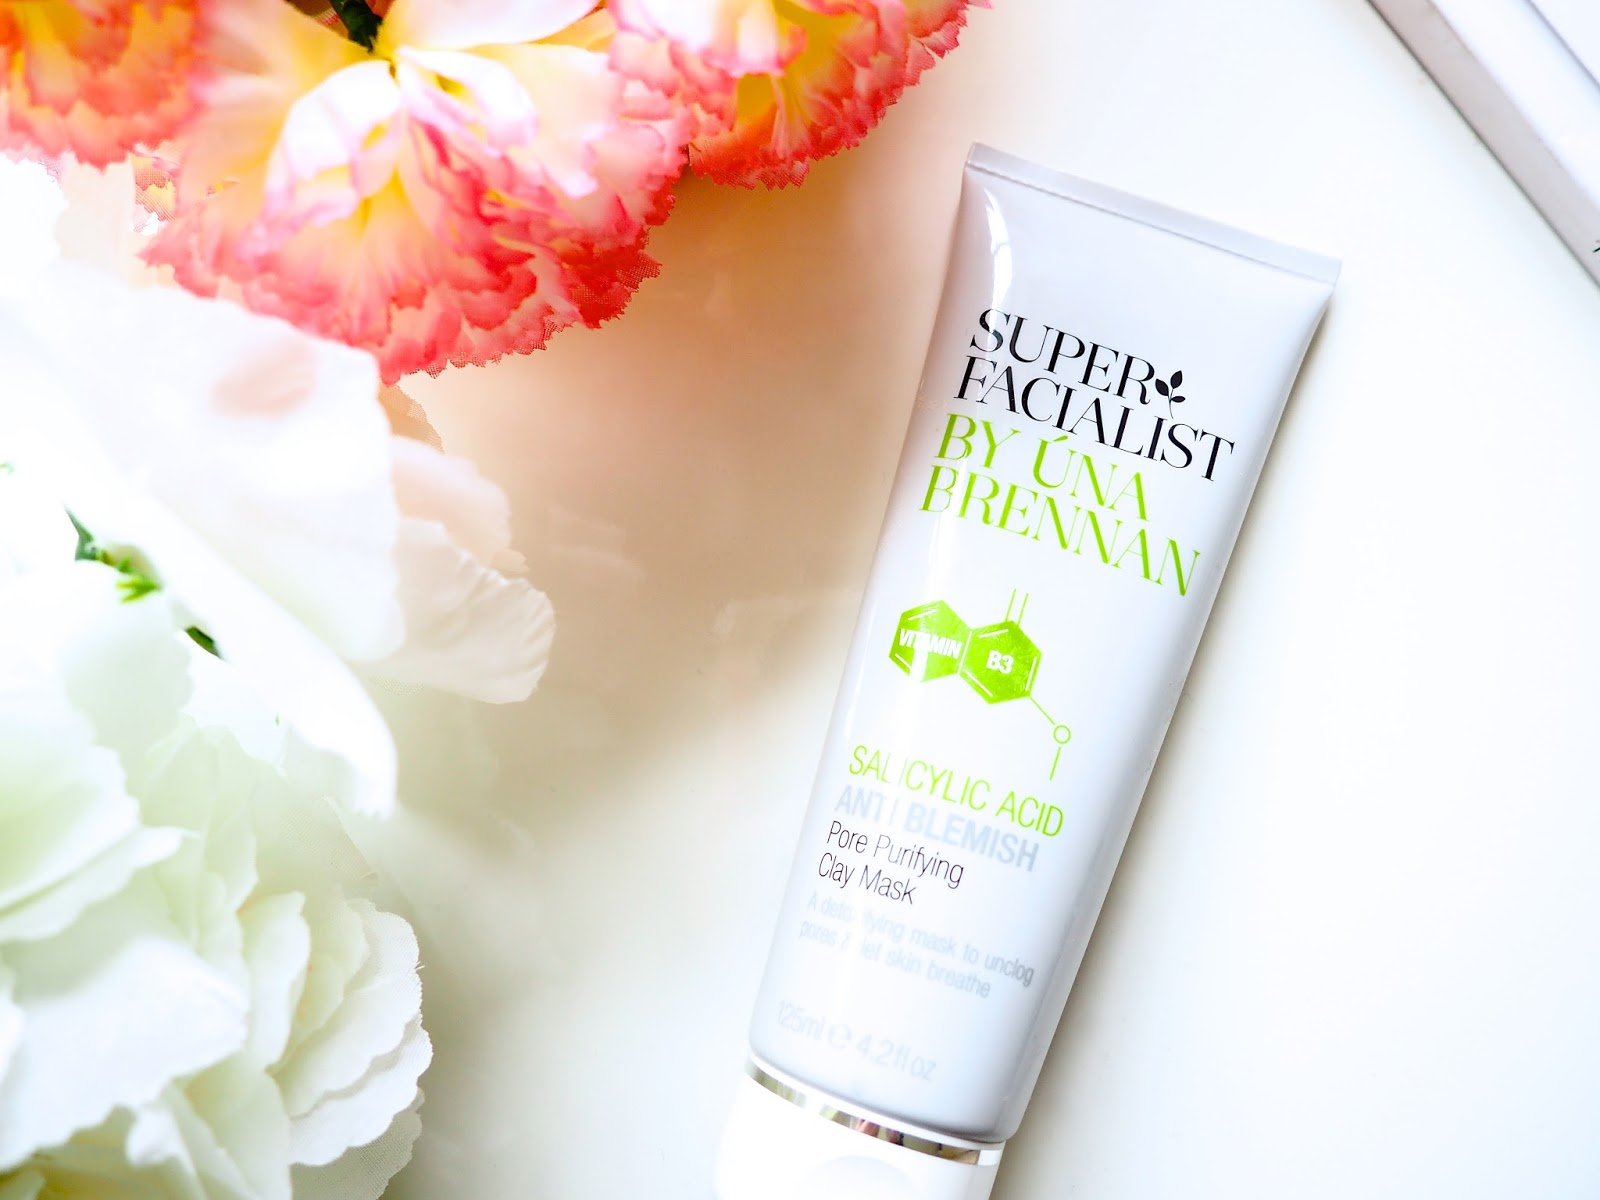 It's Cultured Super Facialist by Una Brennan Pore Purifying Clay Face Mask Boots Blog Review